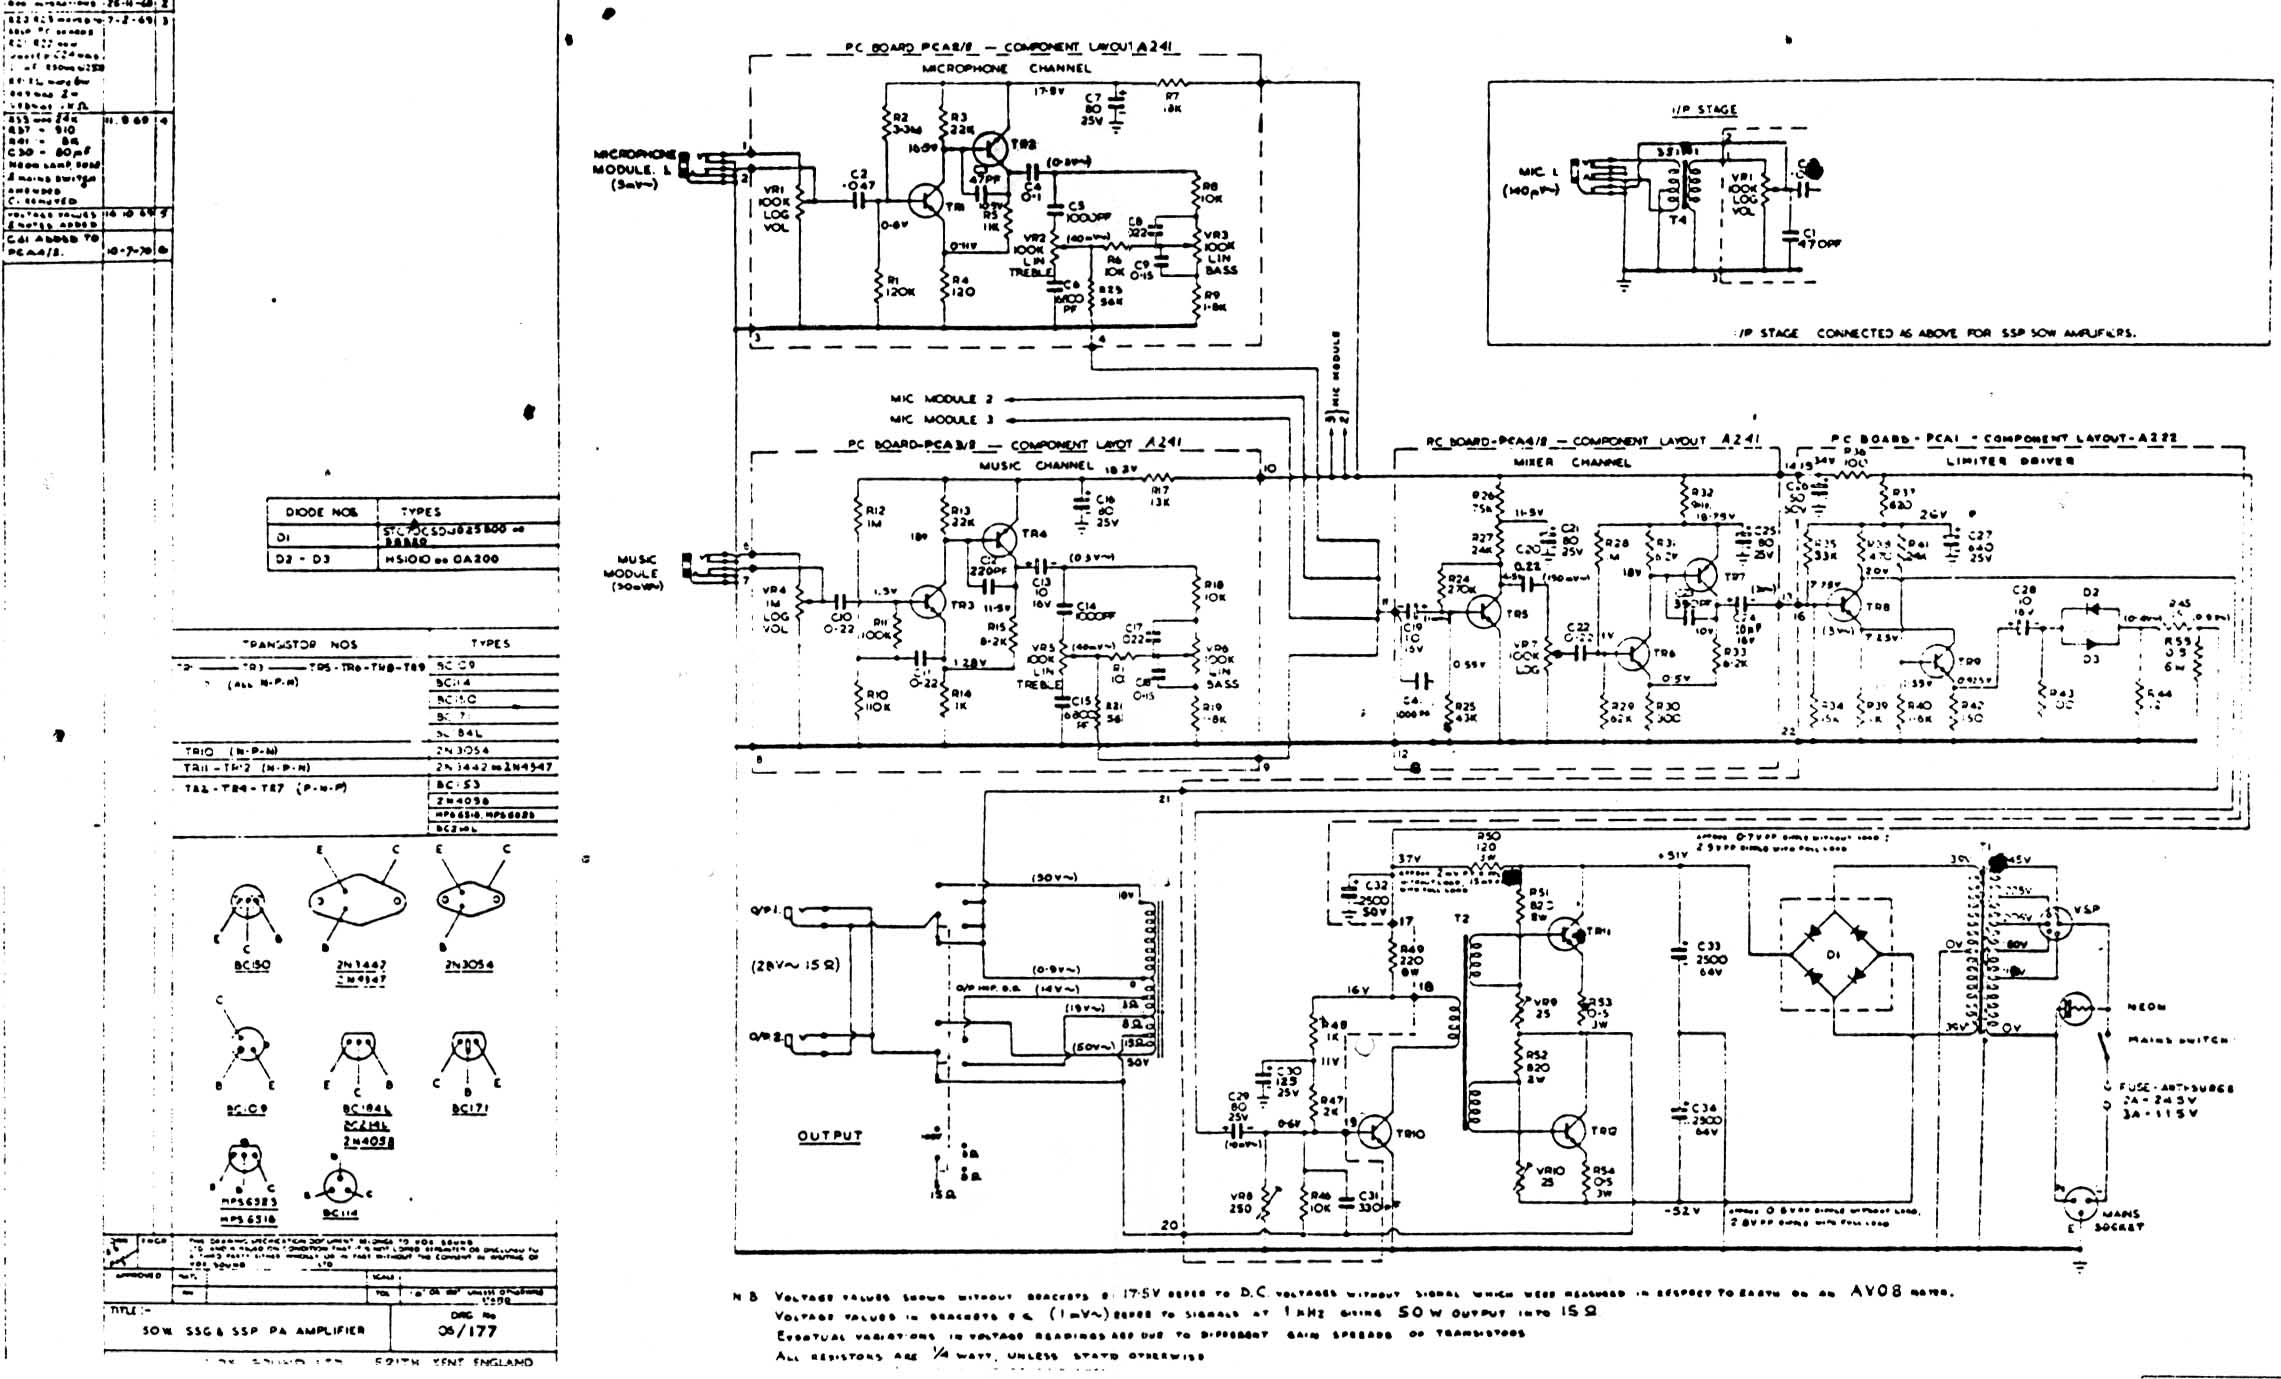 Vox Vintage Circuit Diagrams 50 Amp Furthermore 30 Rv Plug Wiring 120 Volt Diagram Moreover Watt Late 1960s Download